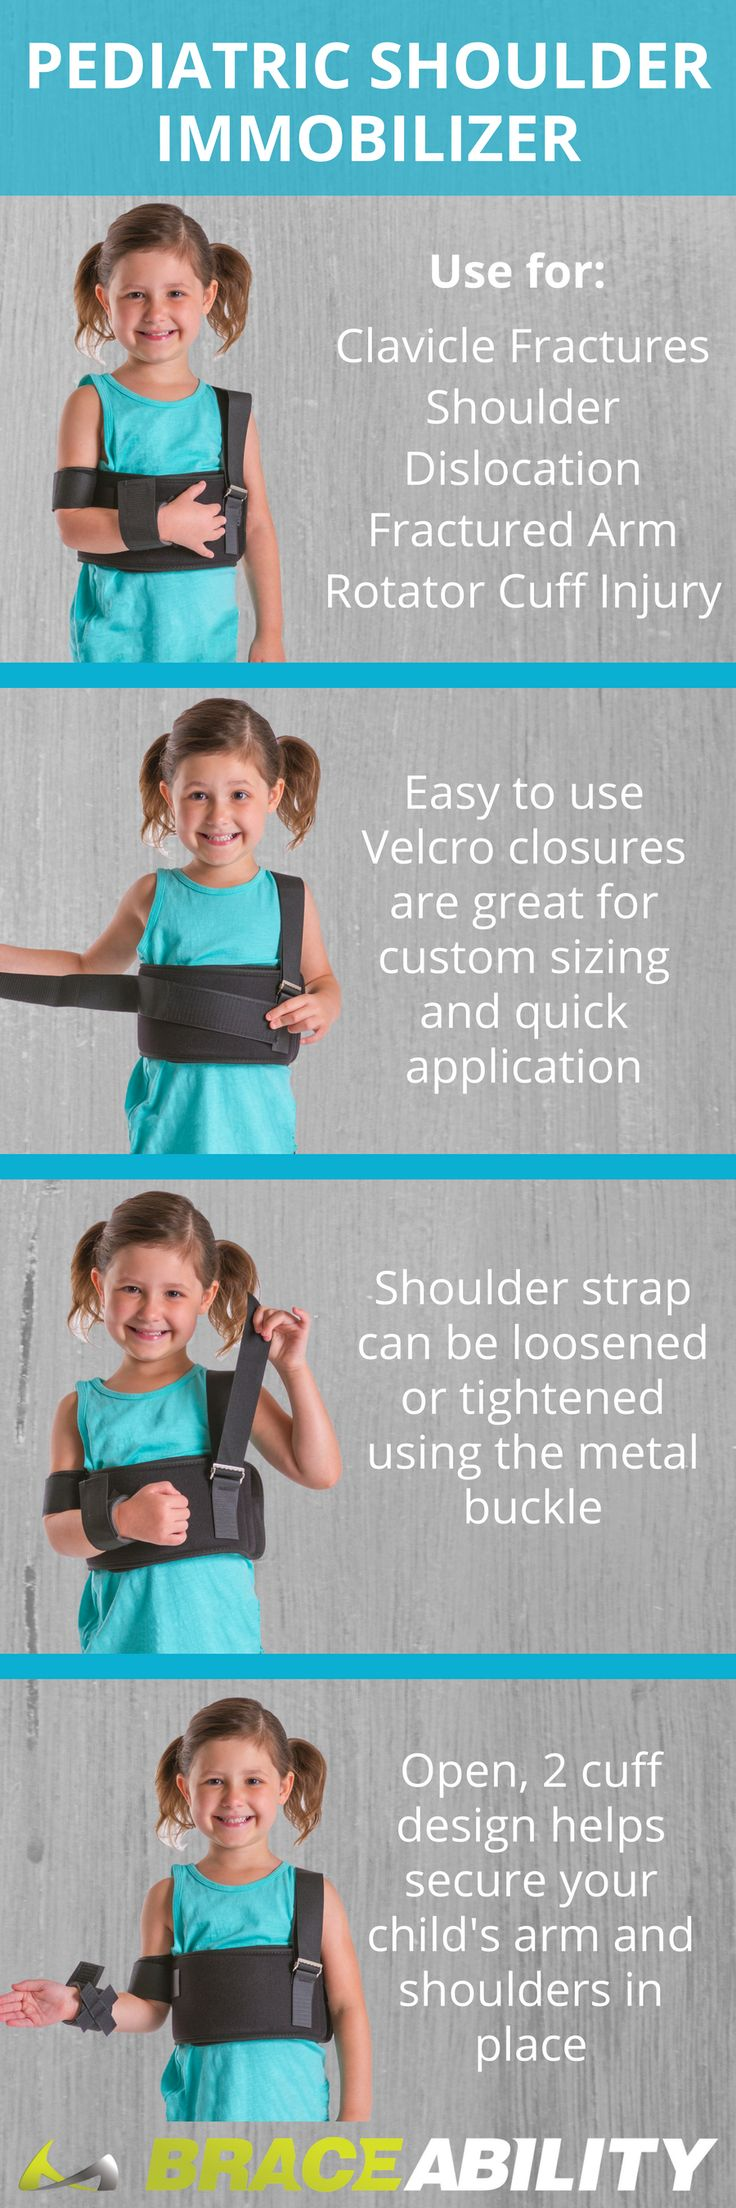 This pediatric shoulder immobilizer and arm sling for kids helps treat clavicle fractures (broken collarbones), shoulder dislocations and subluxations, fractured arms, and rotator cuff injuries. It's made of soft, foam laminate with two cuffs and Velcro closures for comfortable immobilization, even for the most active child. Visit https://www.braceability.com/kids-arm-sling-pediatric-shoulder-immobilizer to shop now!